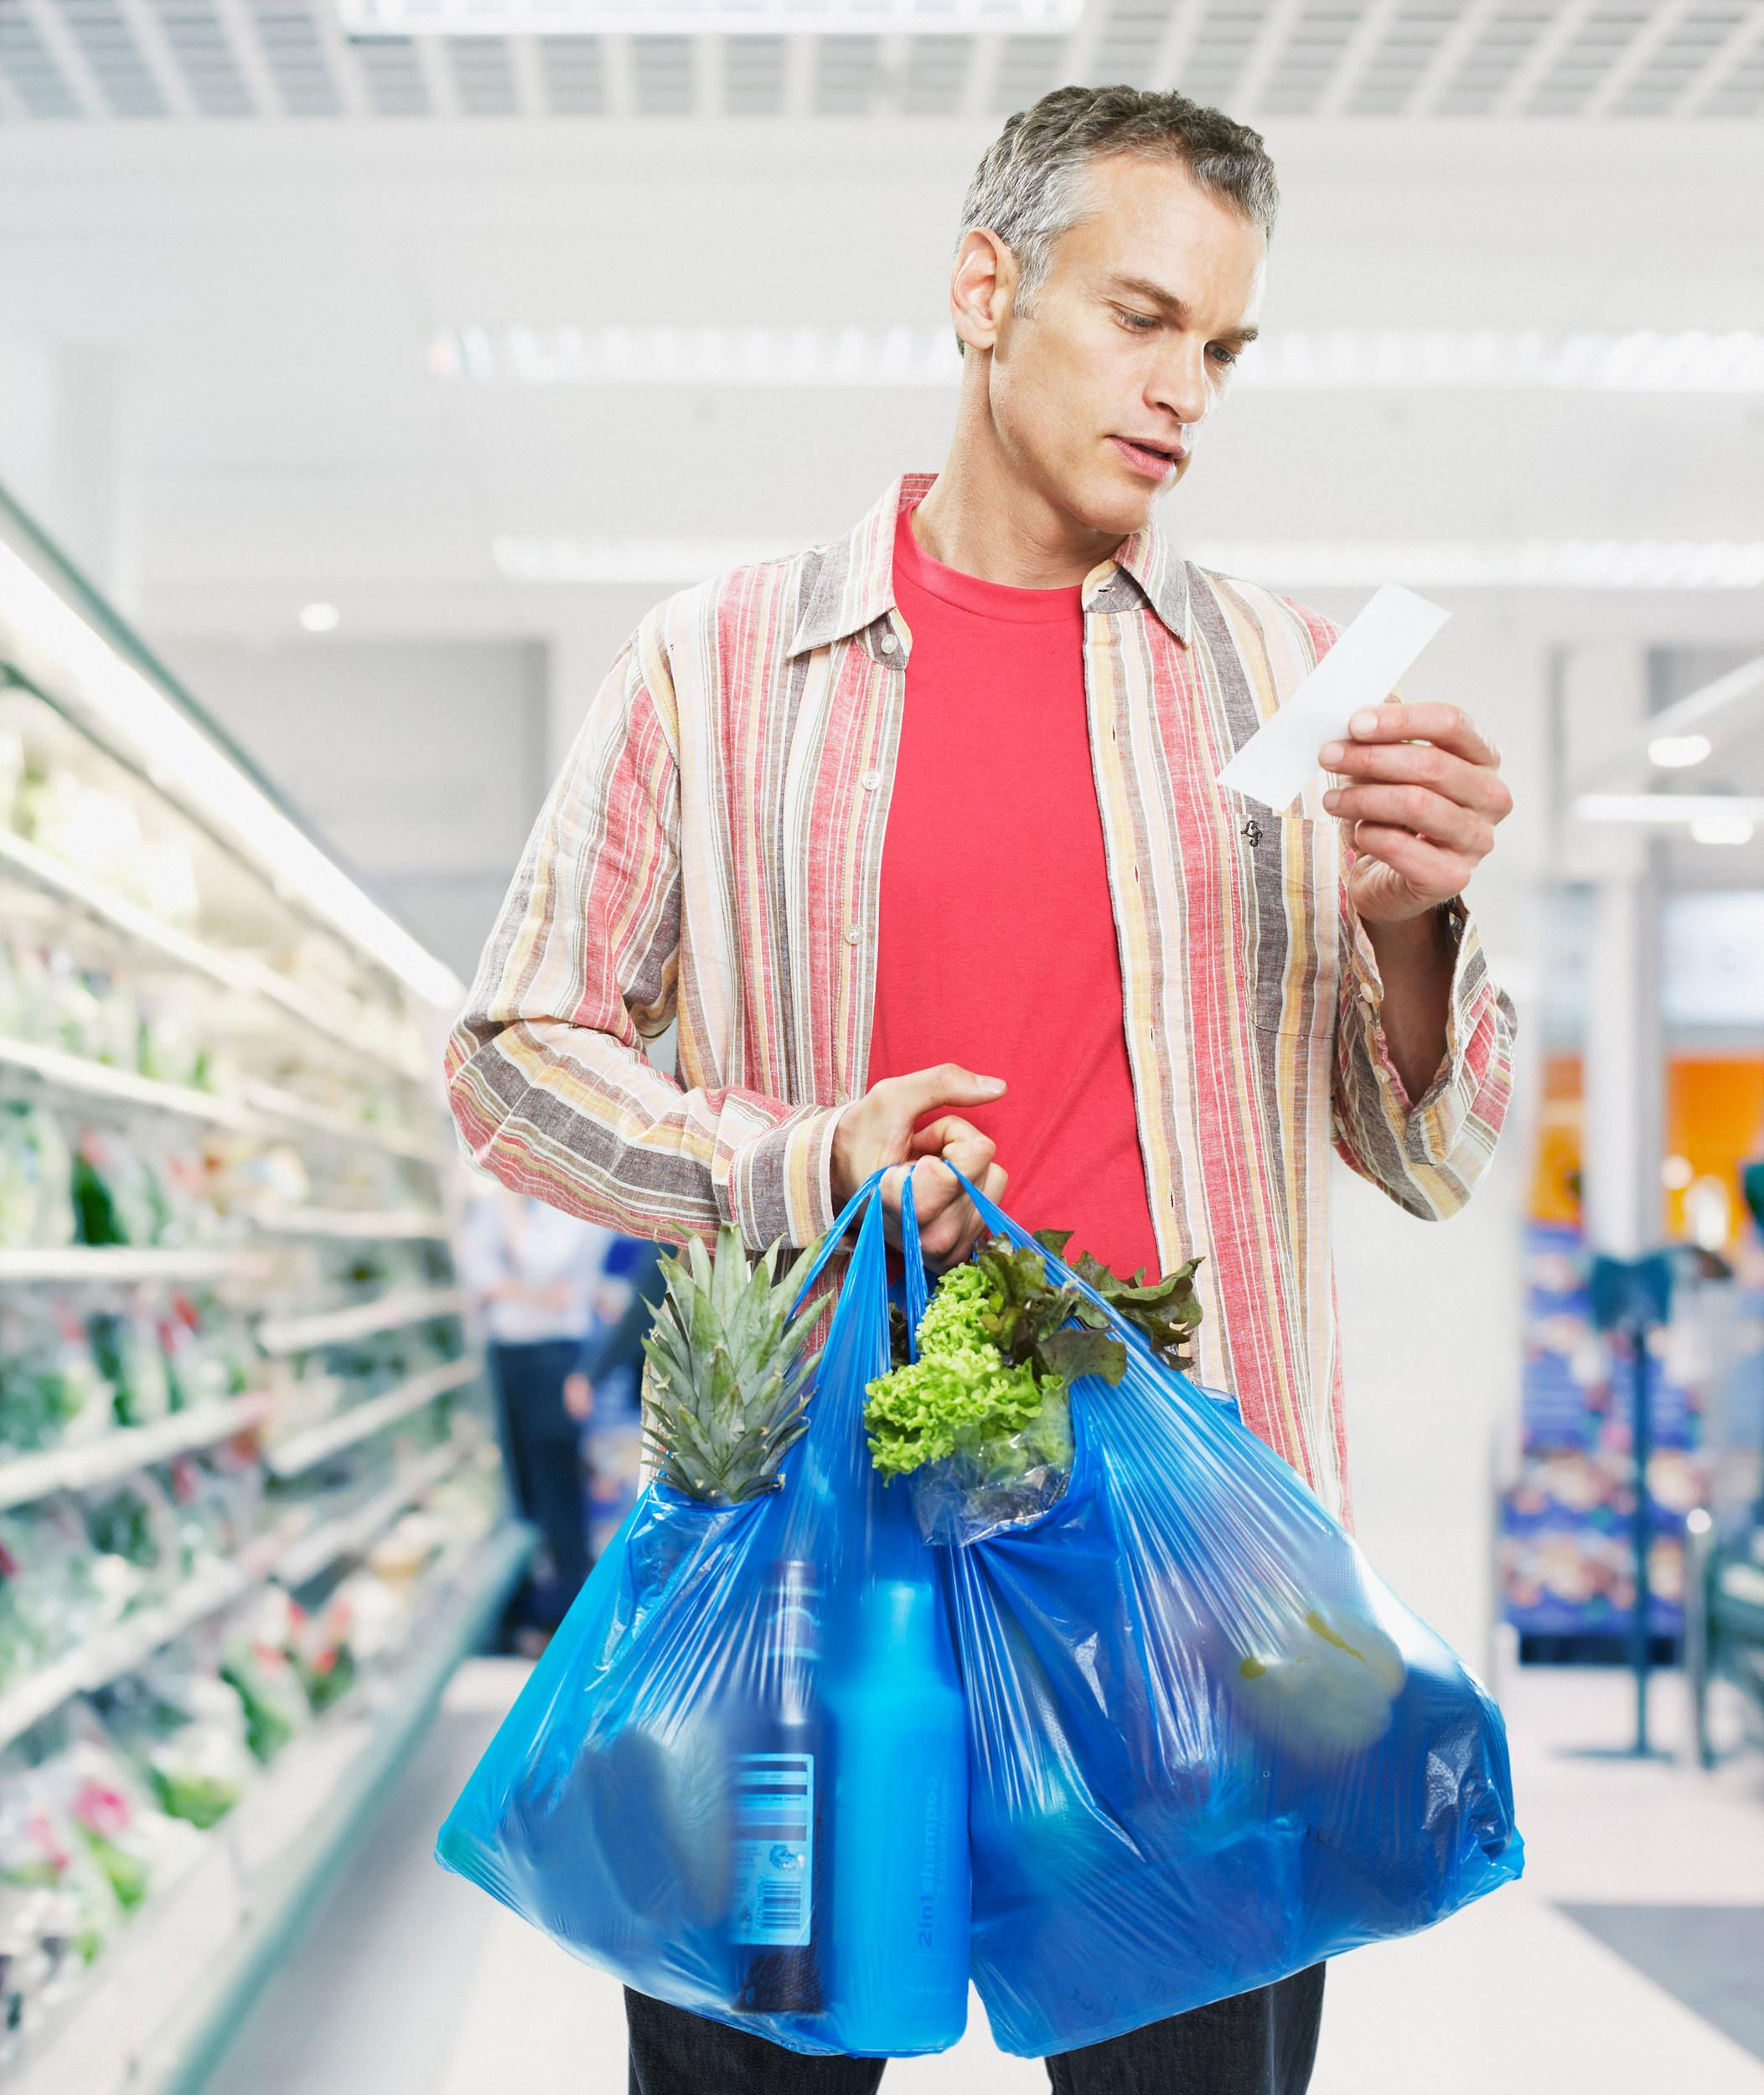 Prices change all the time, but it pays to have a shopping list annotated with the usual price - or an old receipt - on hand when you are shopping. When something is on sale, compare it to the usual selling price from your list, to decide if it's really as good value as it purports to be.